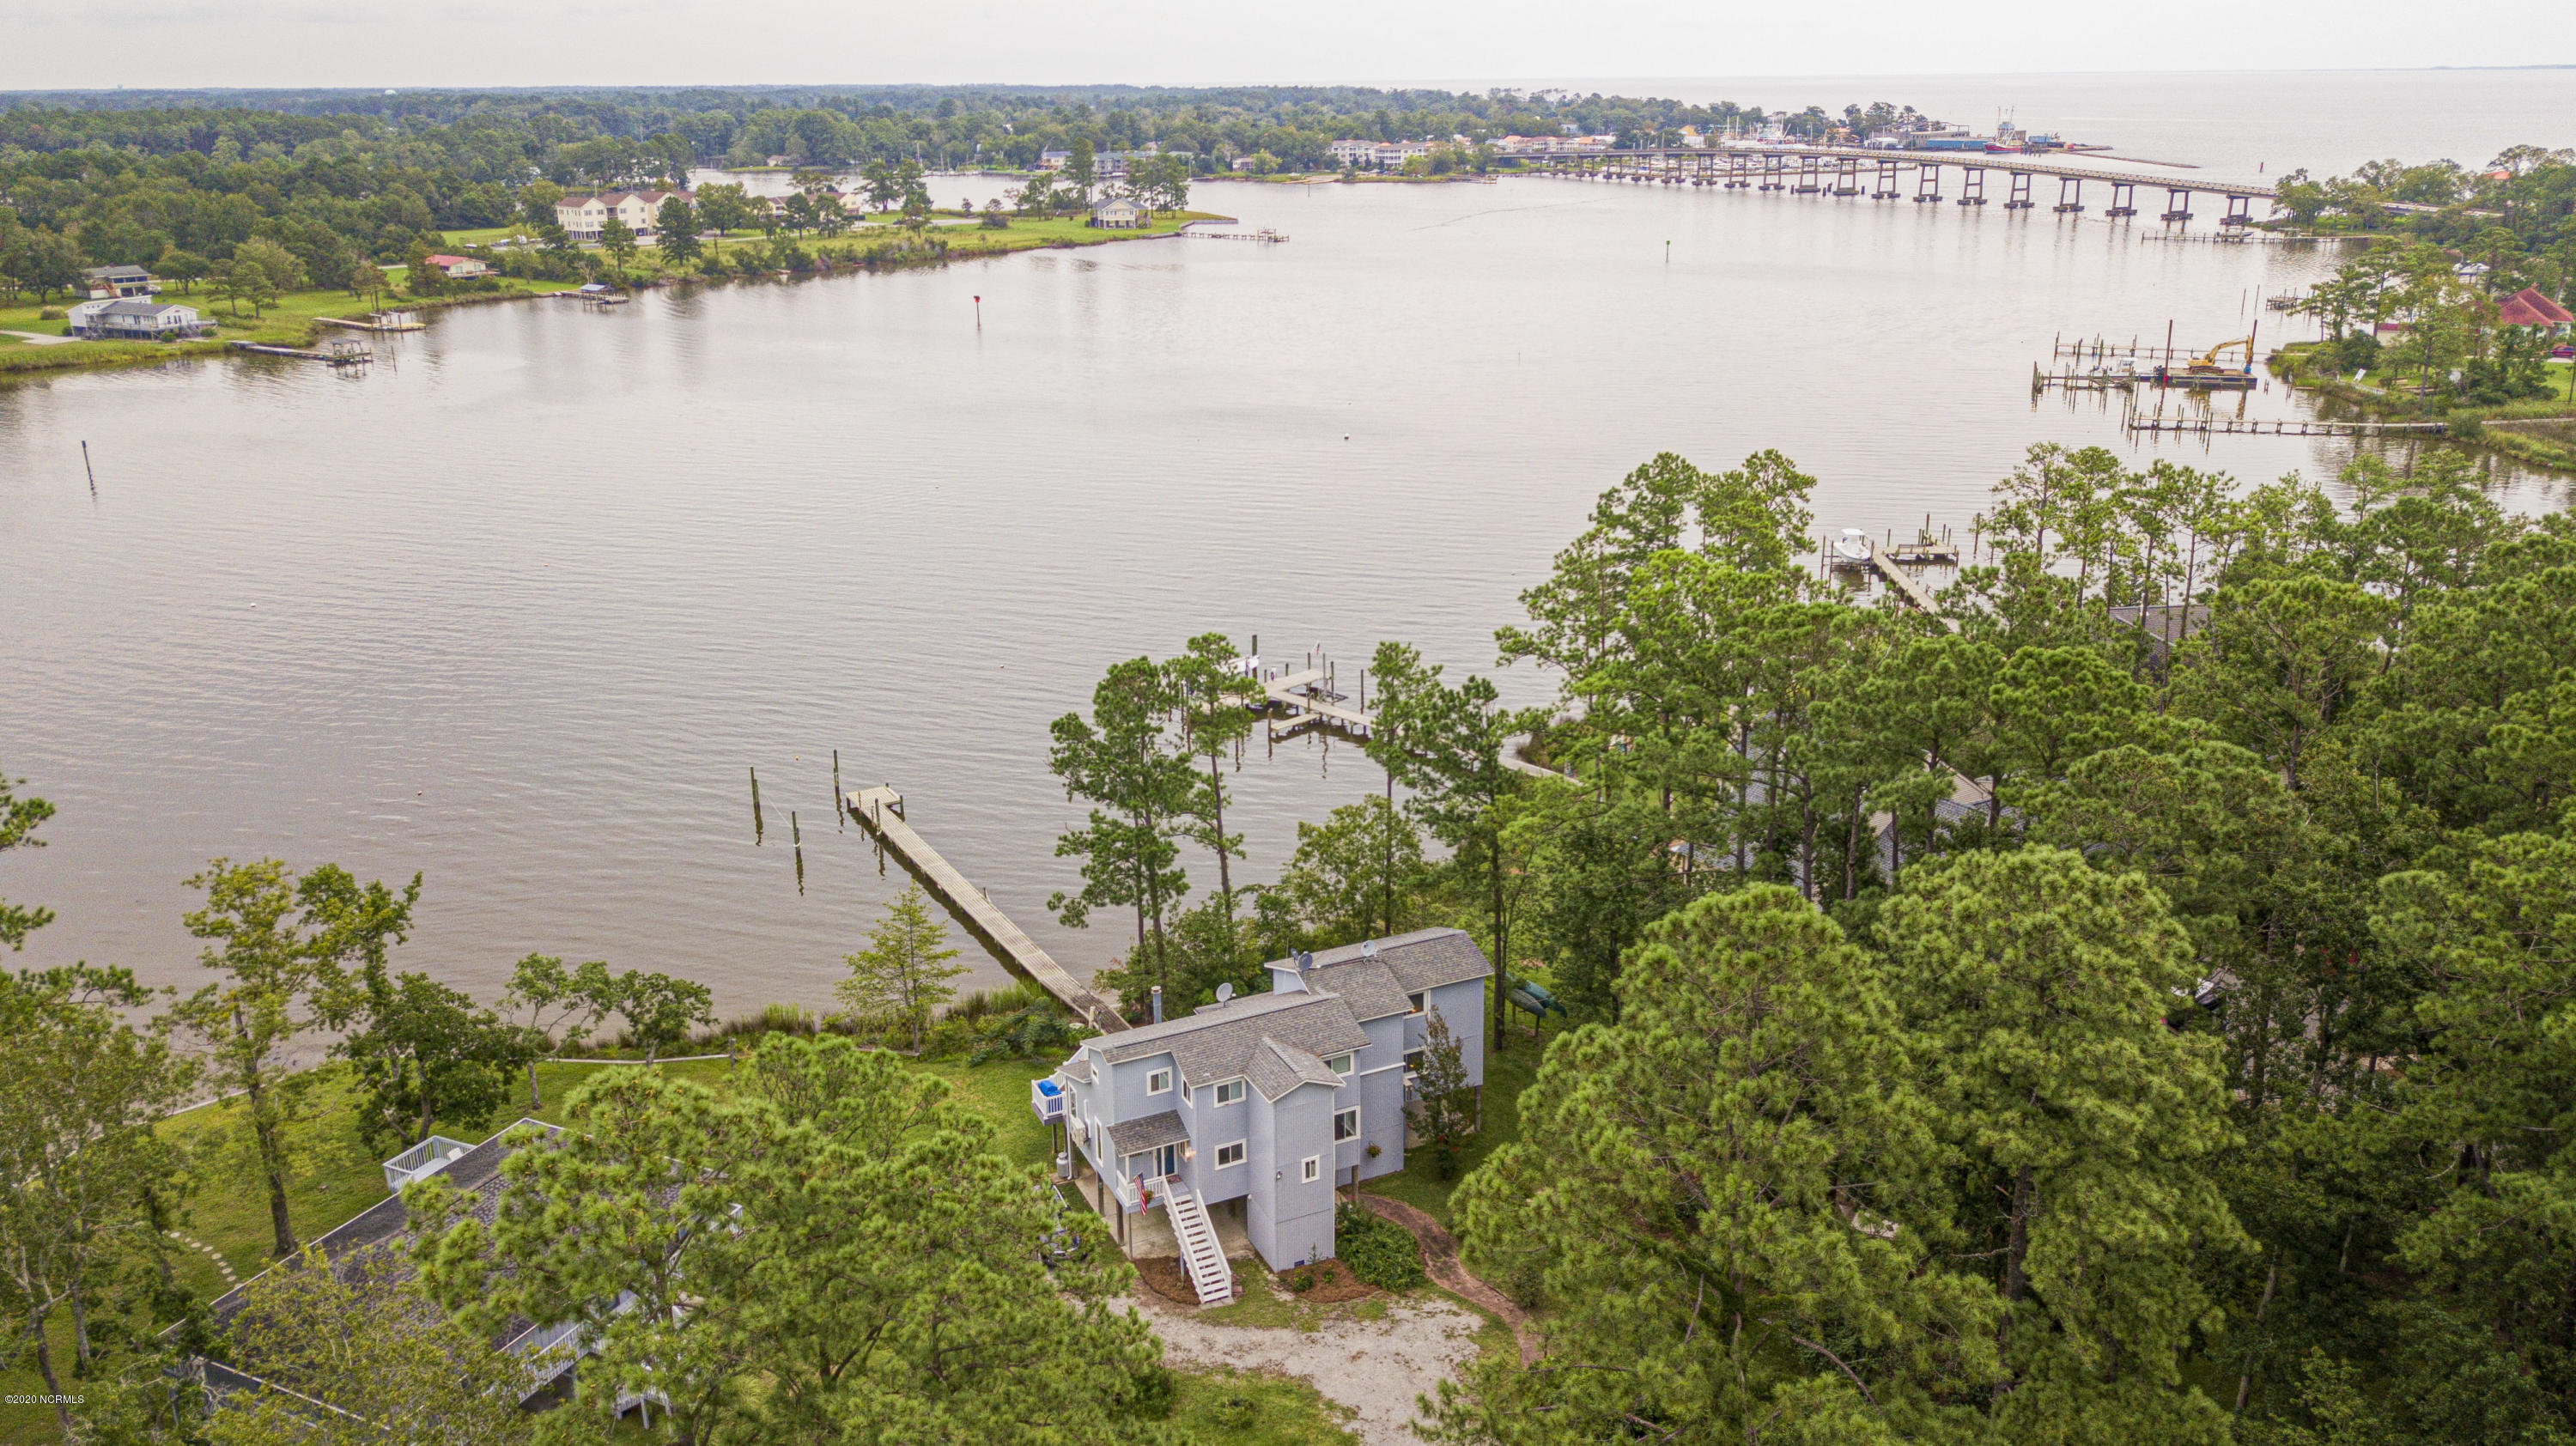 6107 Mainsail Point Road, Oriental, North Carolina 28571, 2 Bedrooms Bedrooms, 7 Rooms Rooms,3 BathroomsBathrooms,Single family residence,For sale,Mainsail Point,100232754